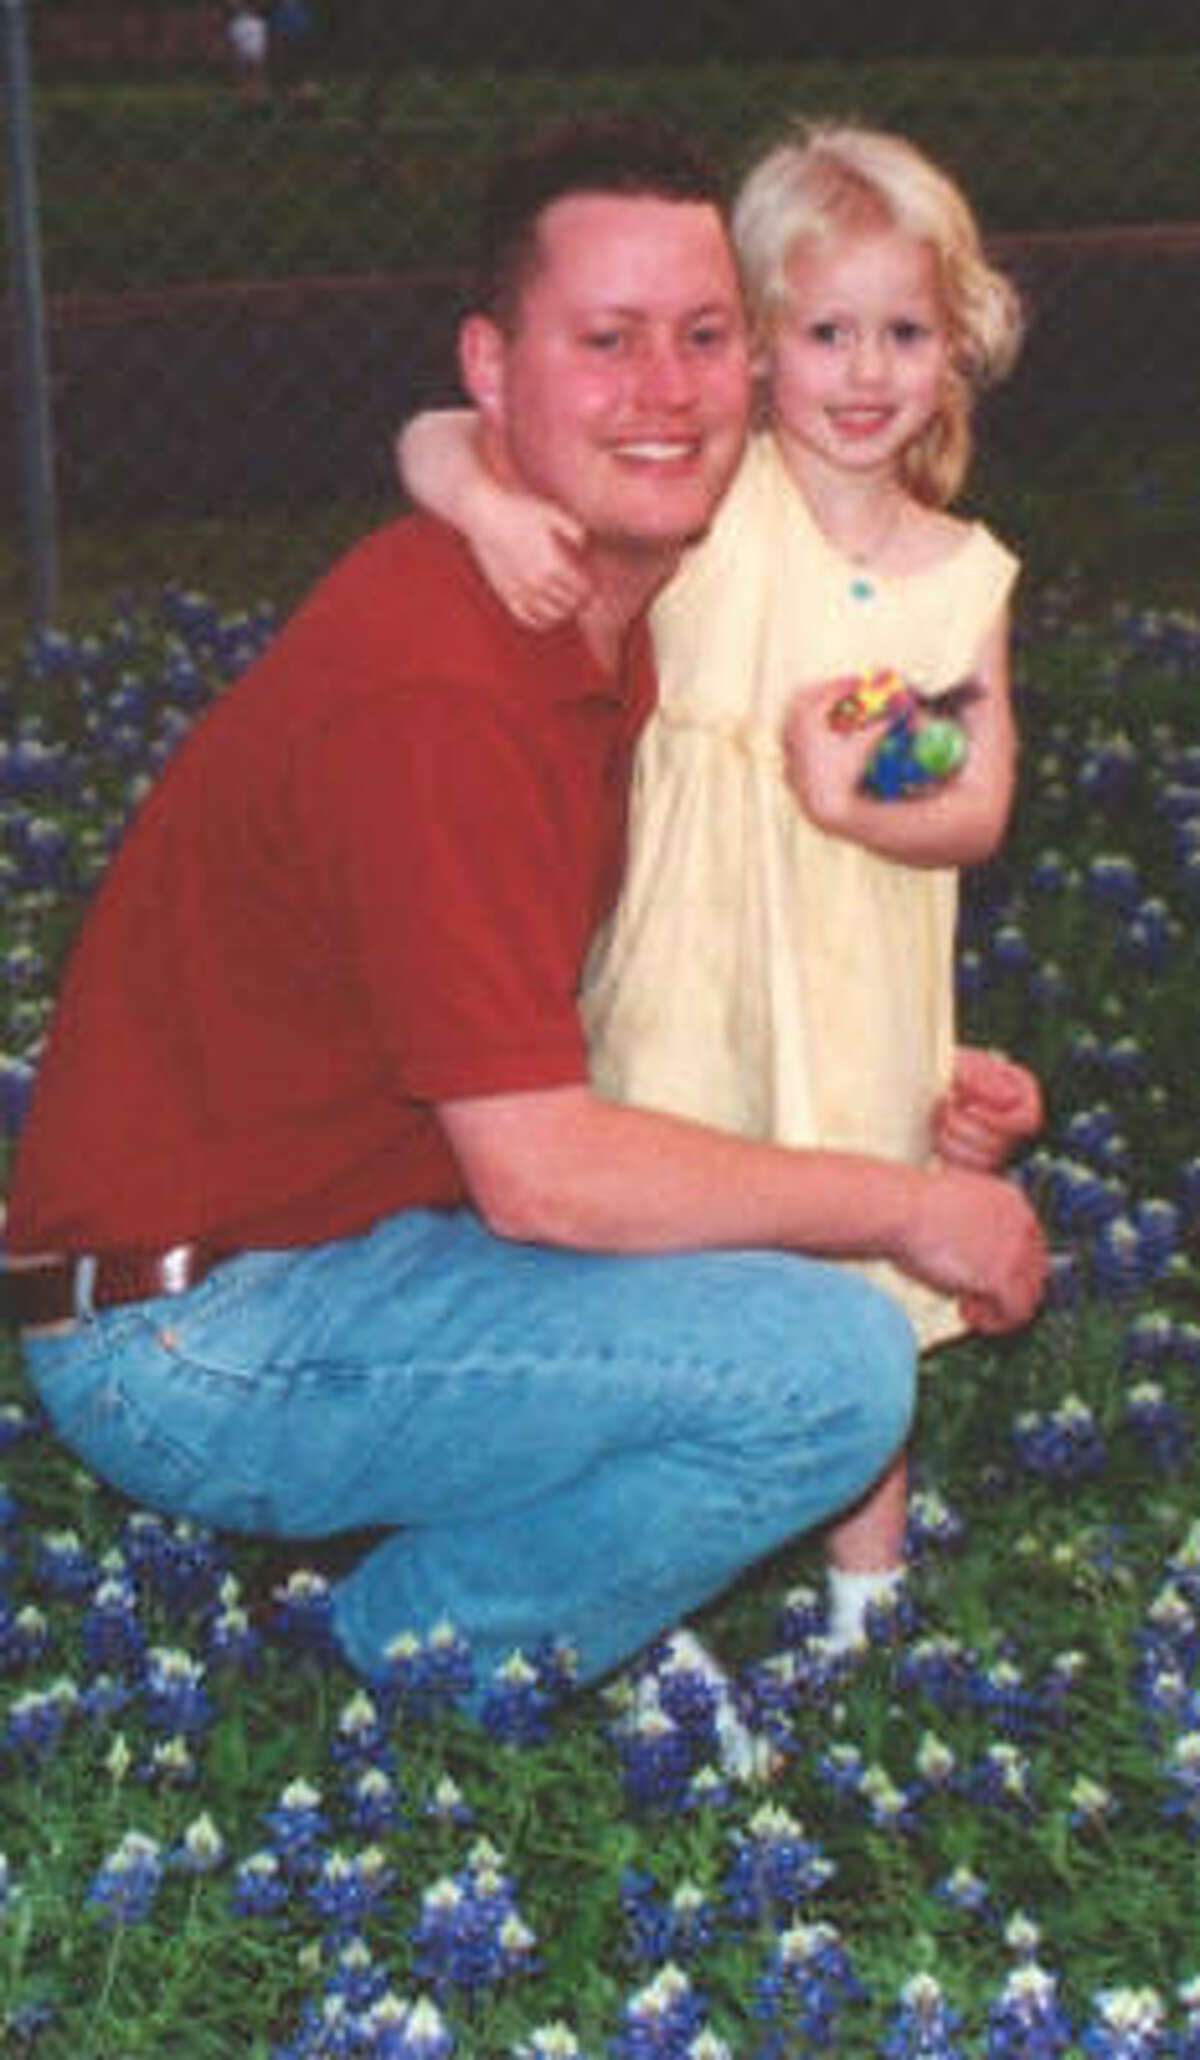 Sabrina Allen is pictured in 2002 with her father, Greg, shortly before she was abducted by her mother.